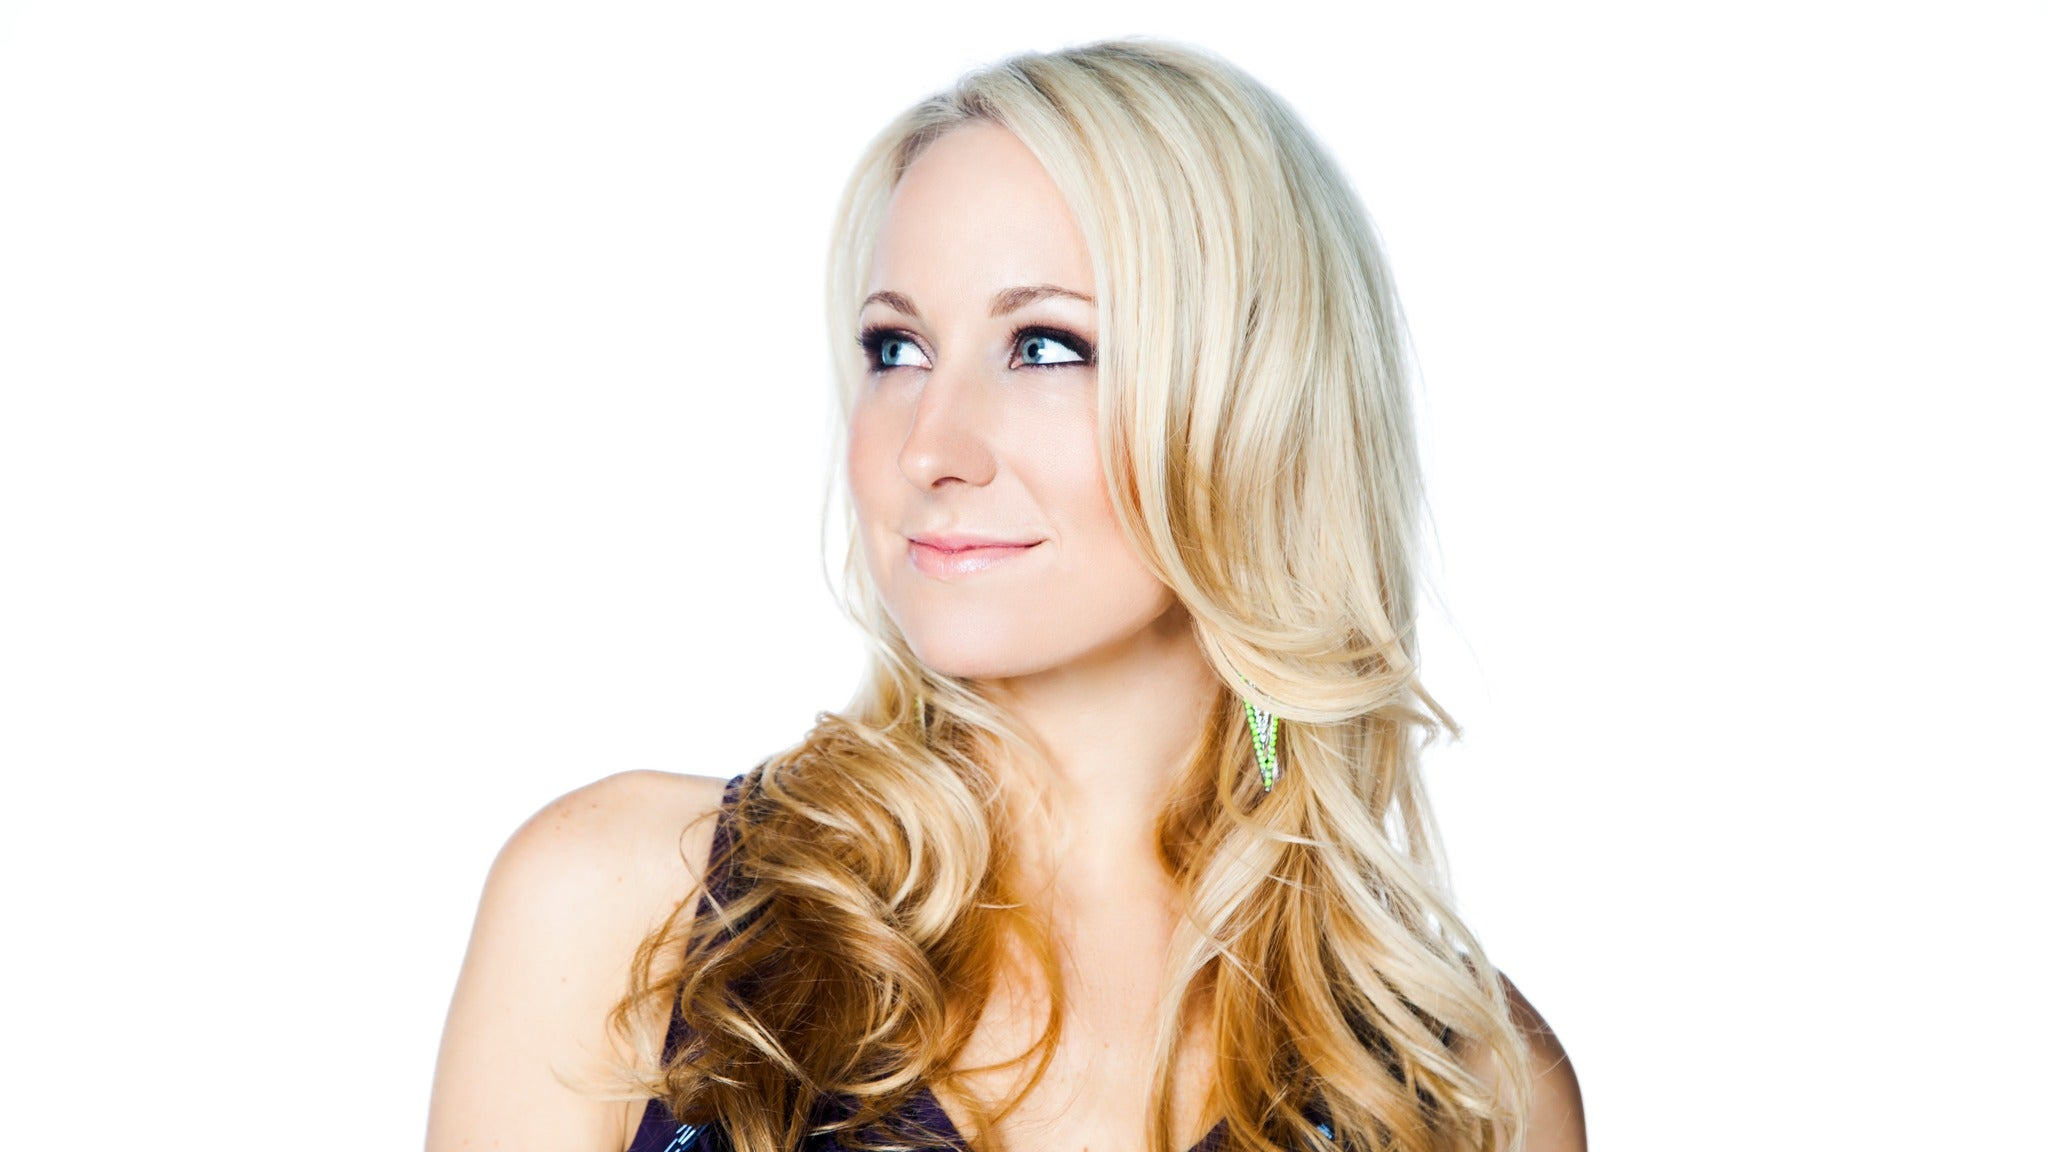 Nikki Glaser at Punch Line Philly